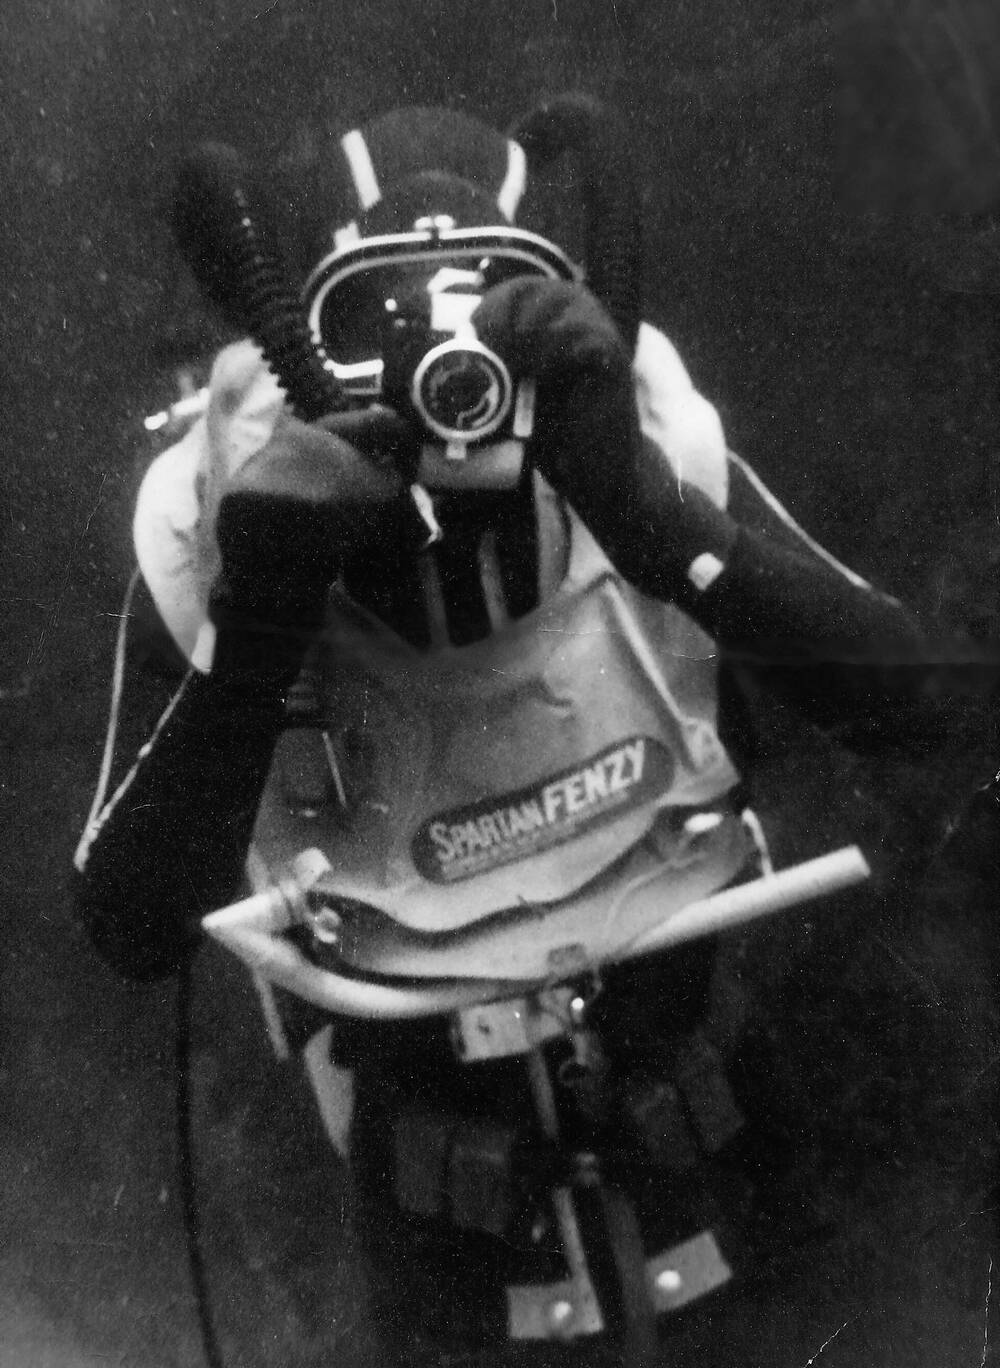 A black and white photo of a diver underwater, holding up a camera to his mask.